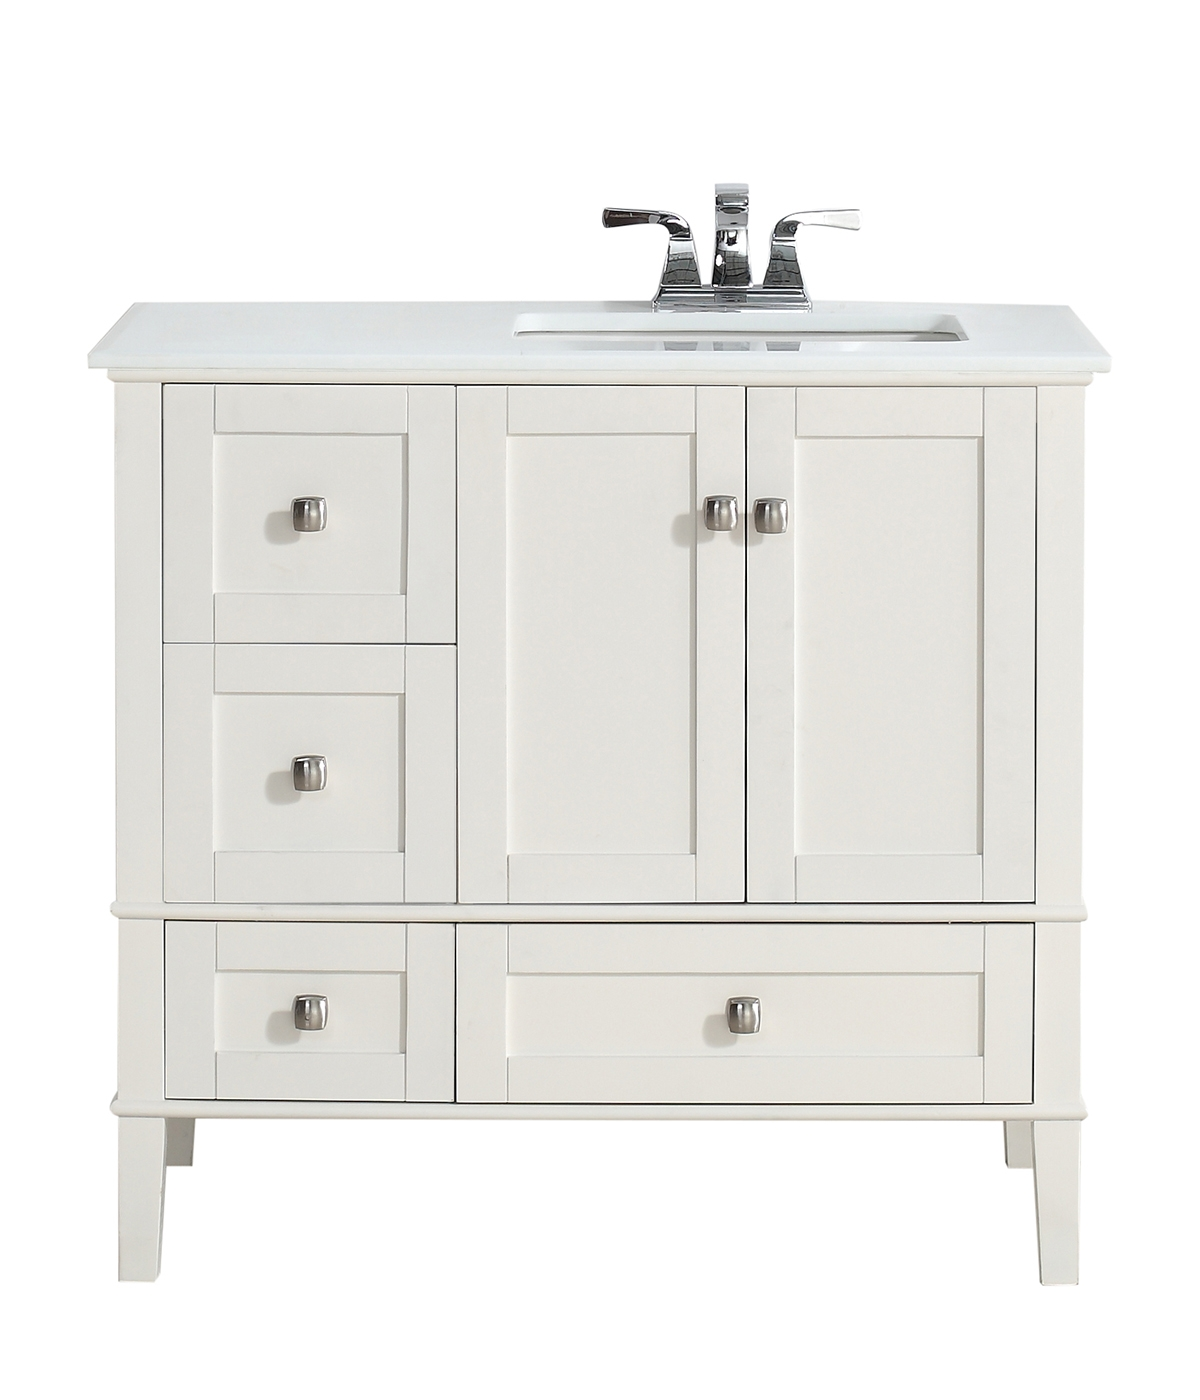 36 Inch Bathroom Vanity With Drawers On Right